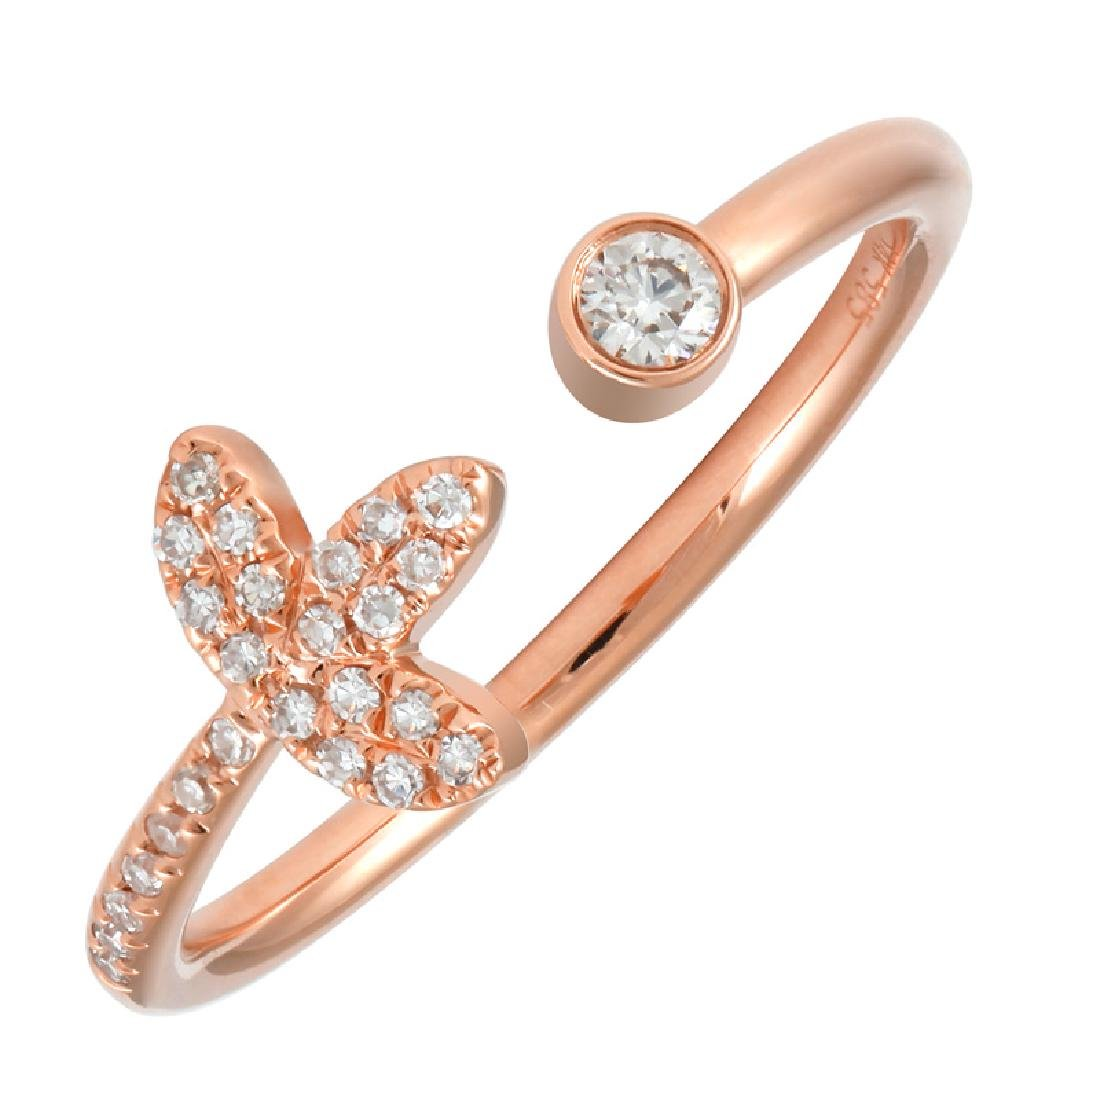 14KT Rose Gold Women's Diamond Ring